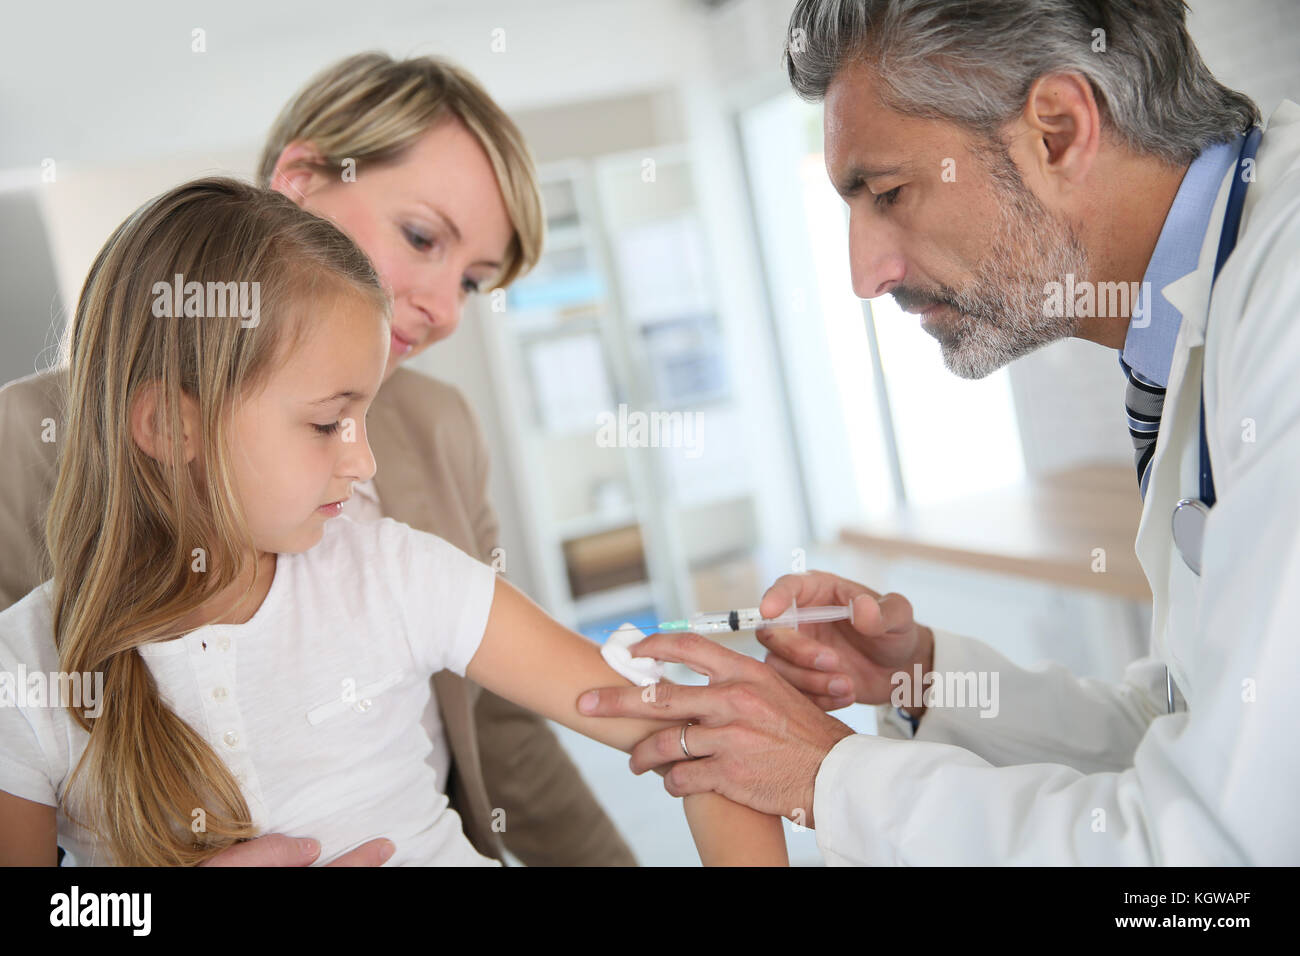 Young girl receiving vaccination in doctor's office - Stock Image